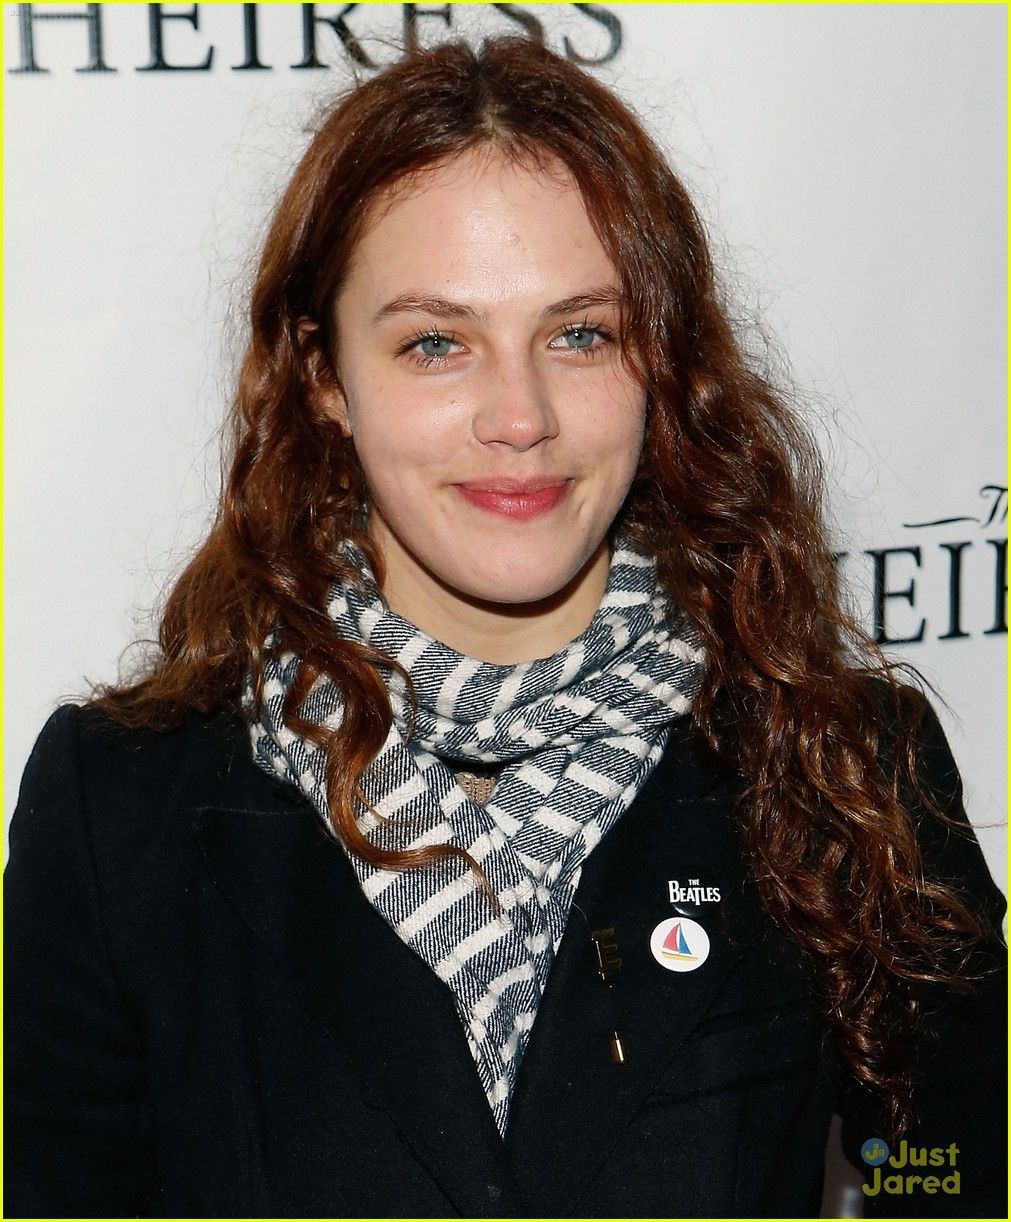 Watch Jessica Brown Findlay (born 1989) video